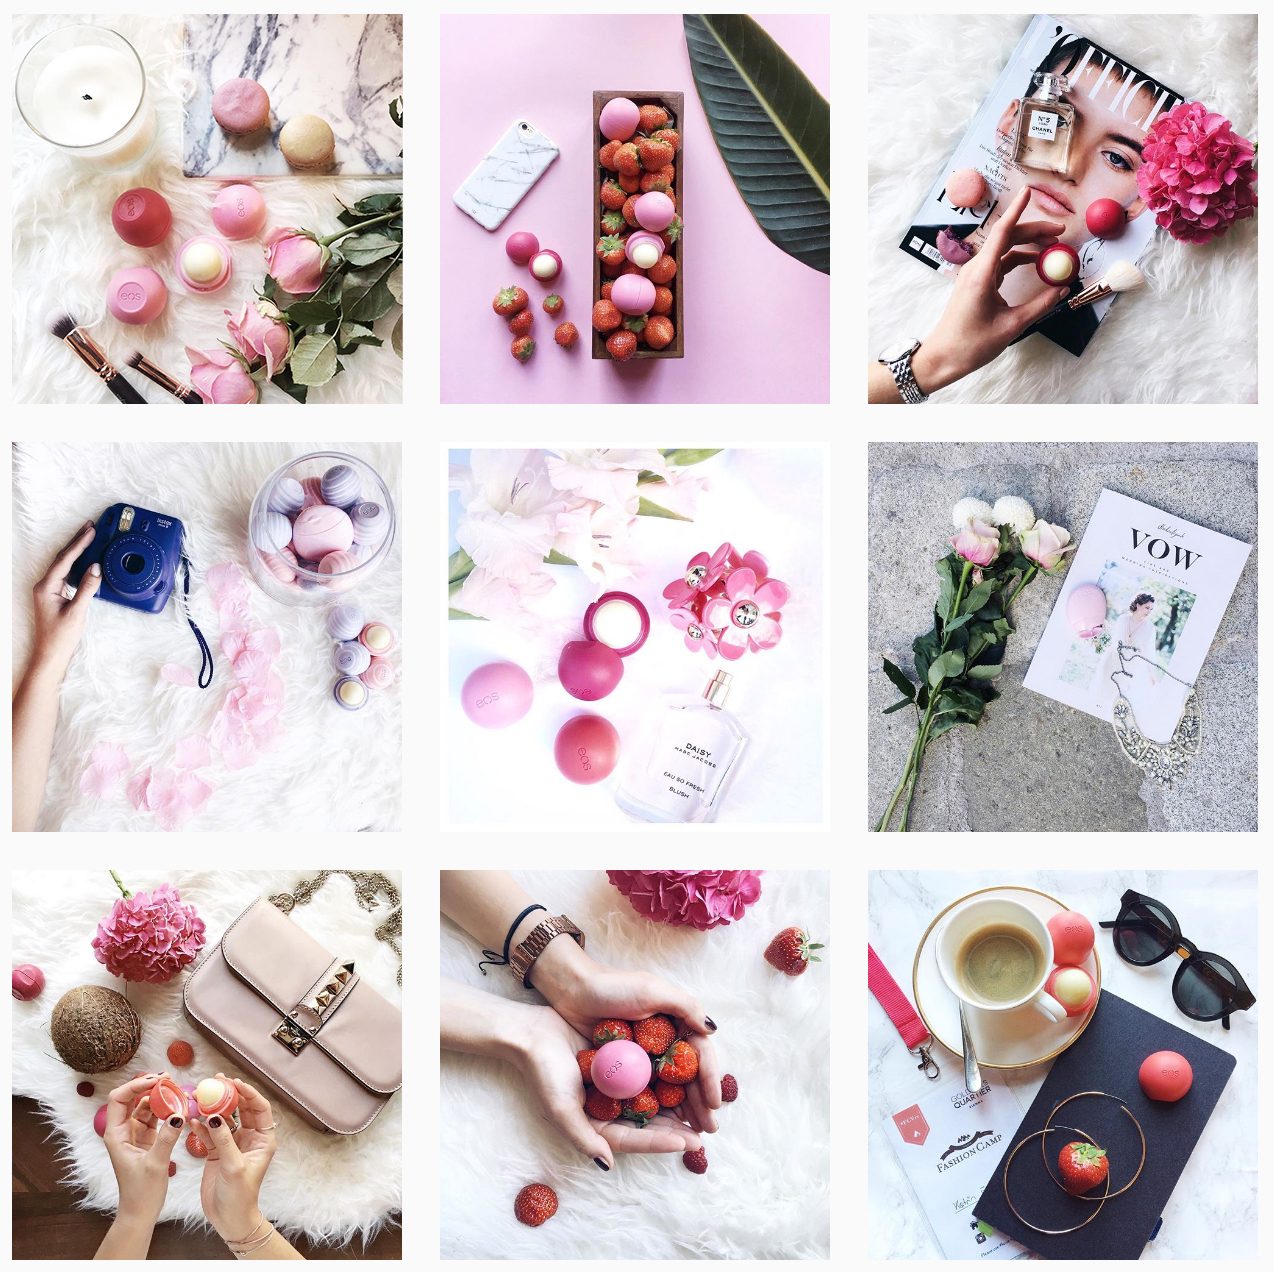 Instagram Photography, 10 Tips for A Good Flatlay | Love Daily Dose